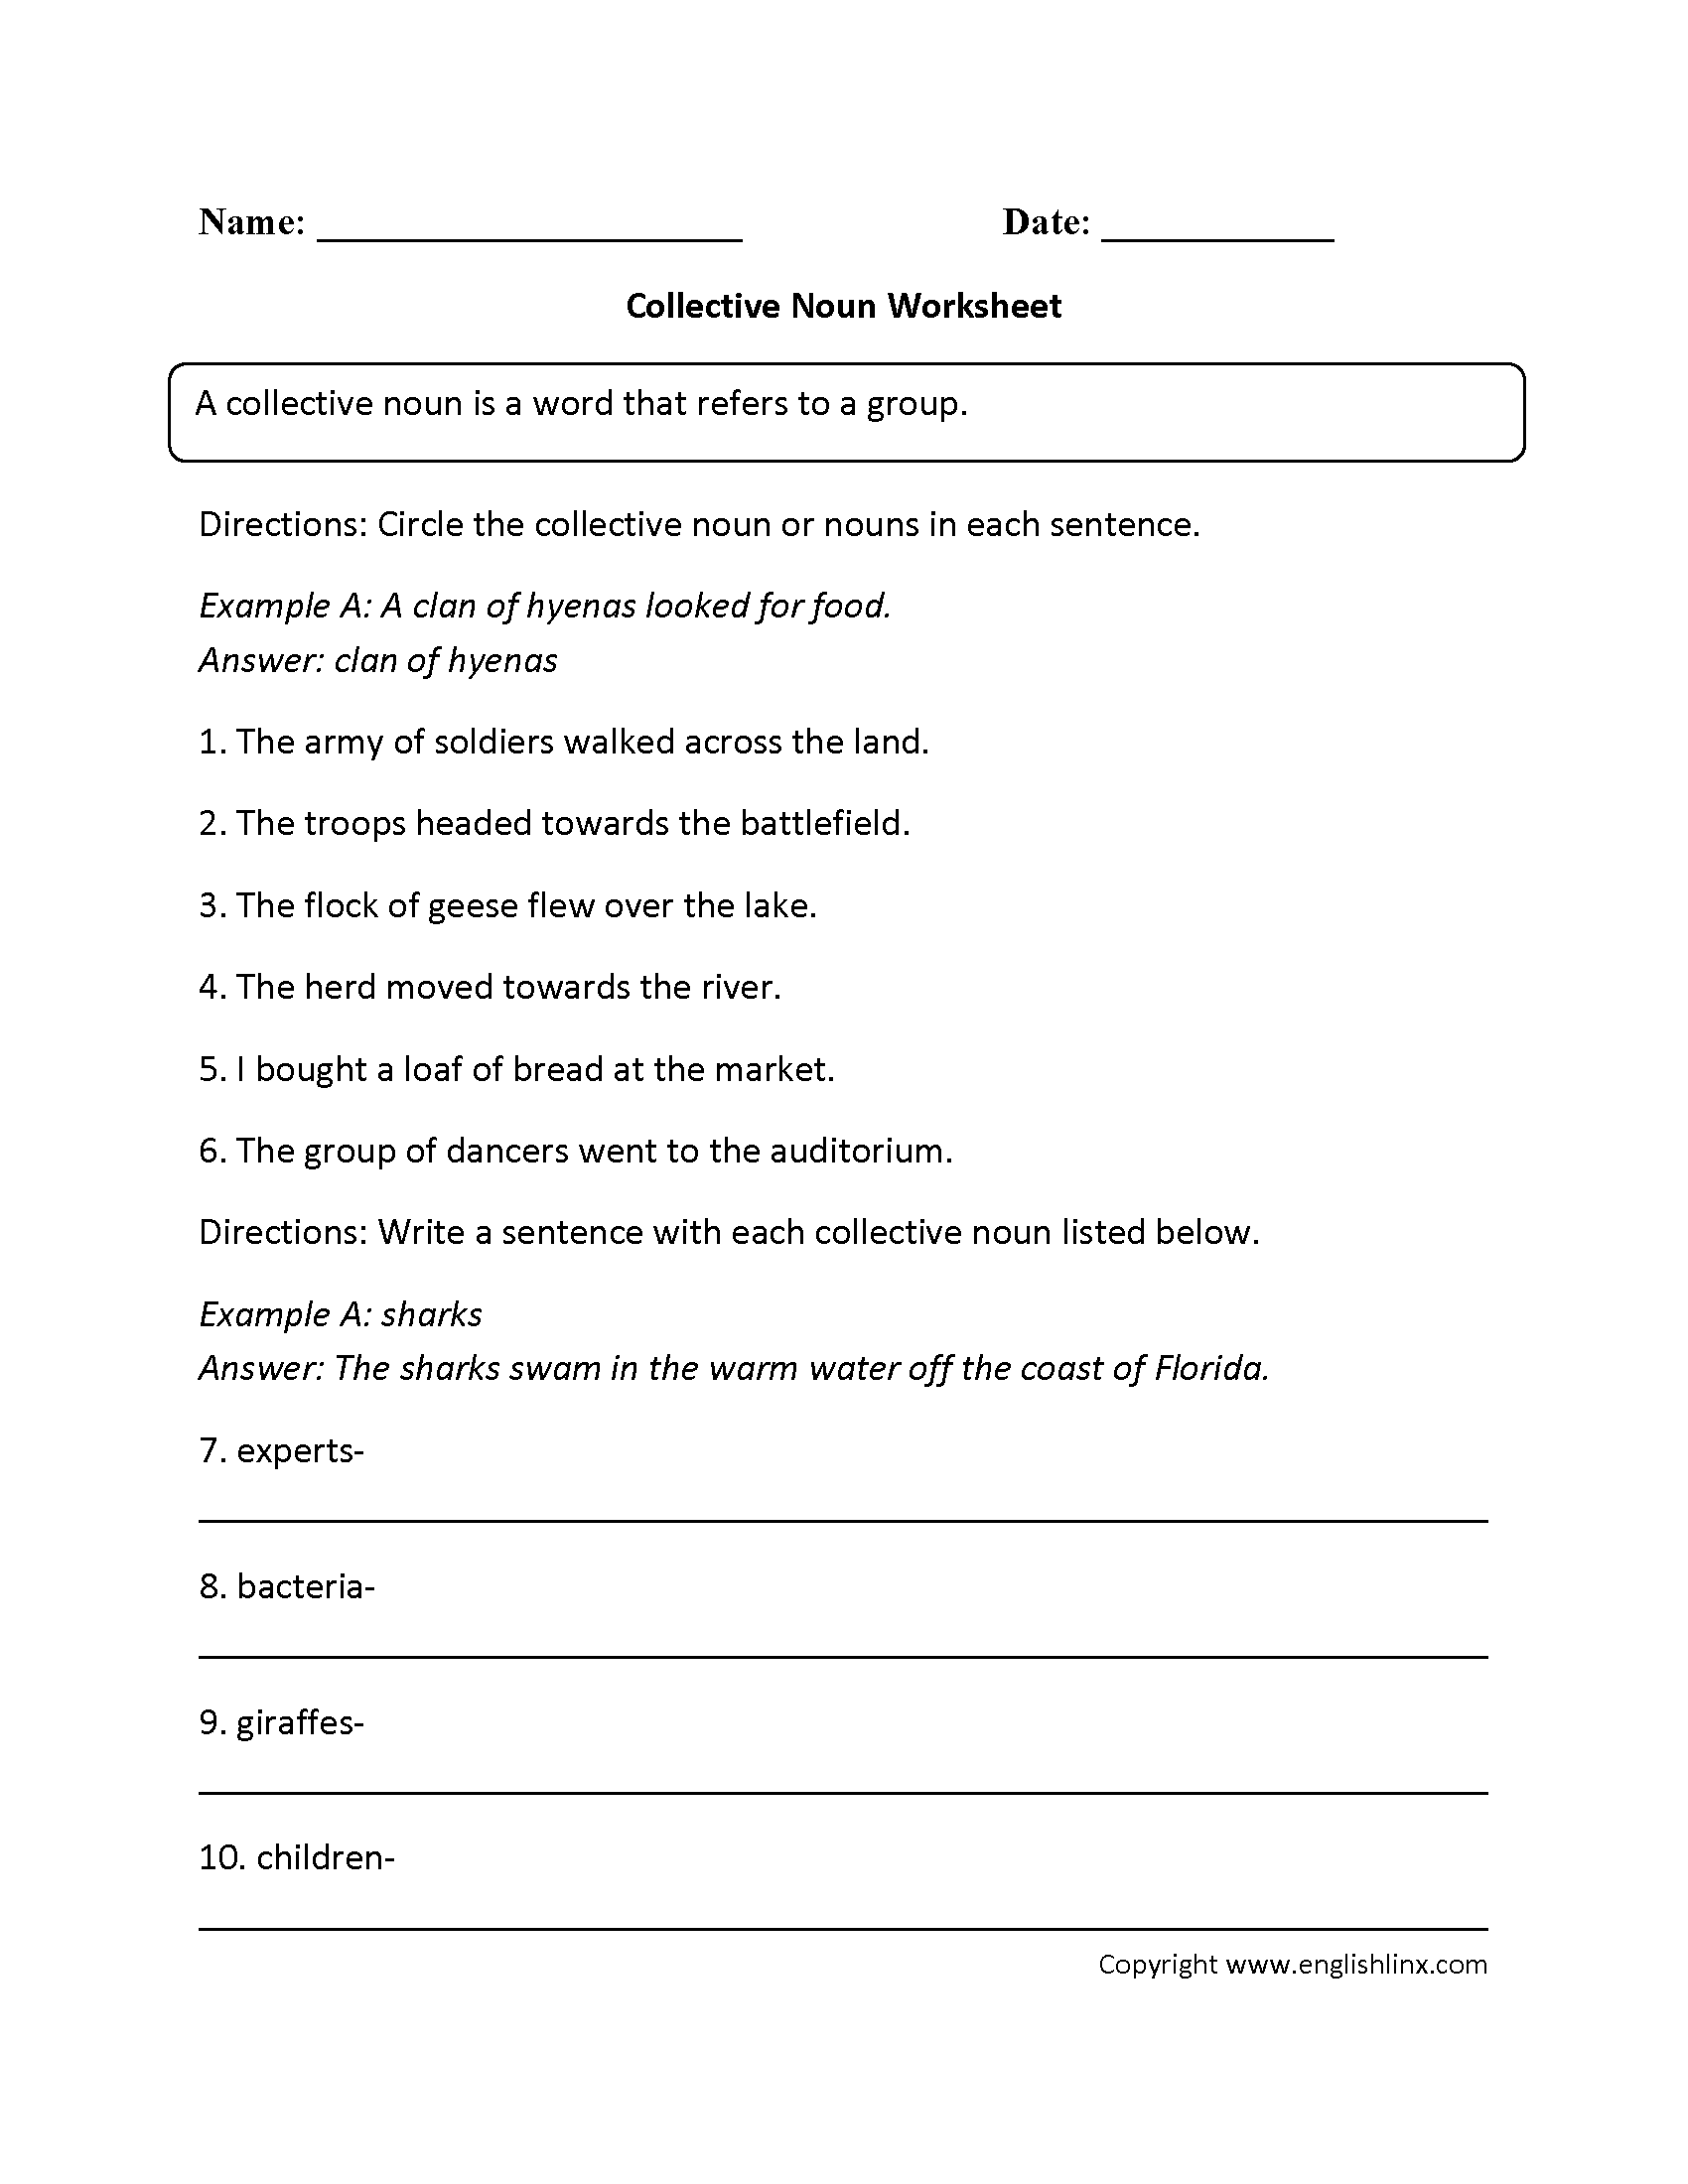 worksheet Noun Worksheets 4th Grade nouns worksheets collective worksheet